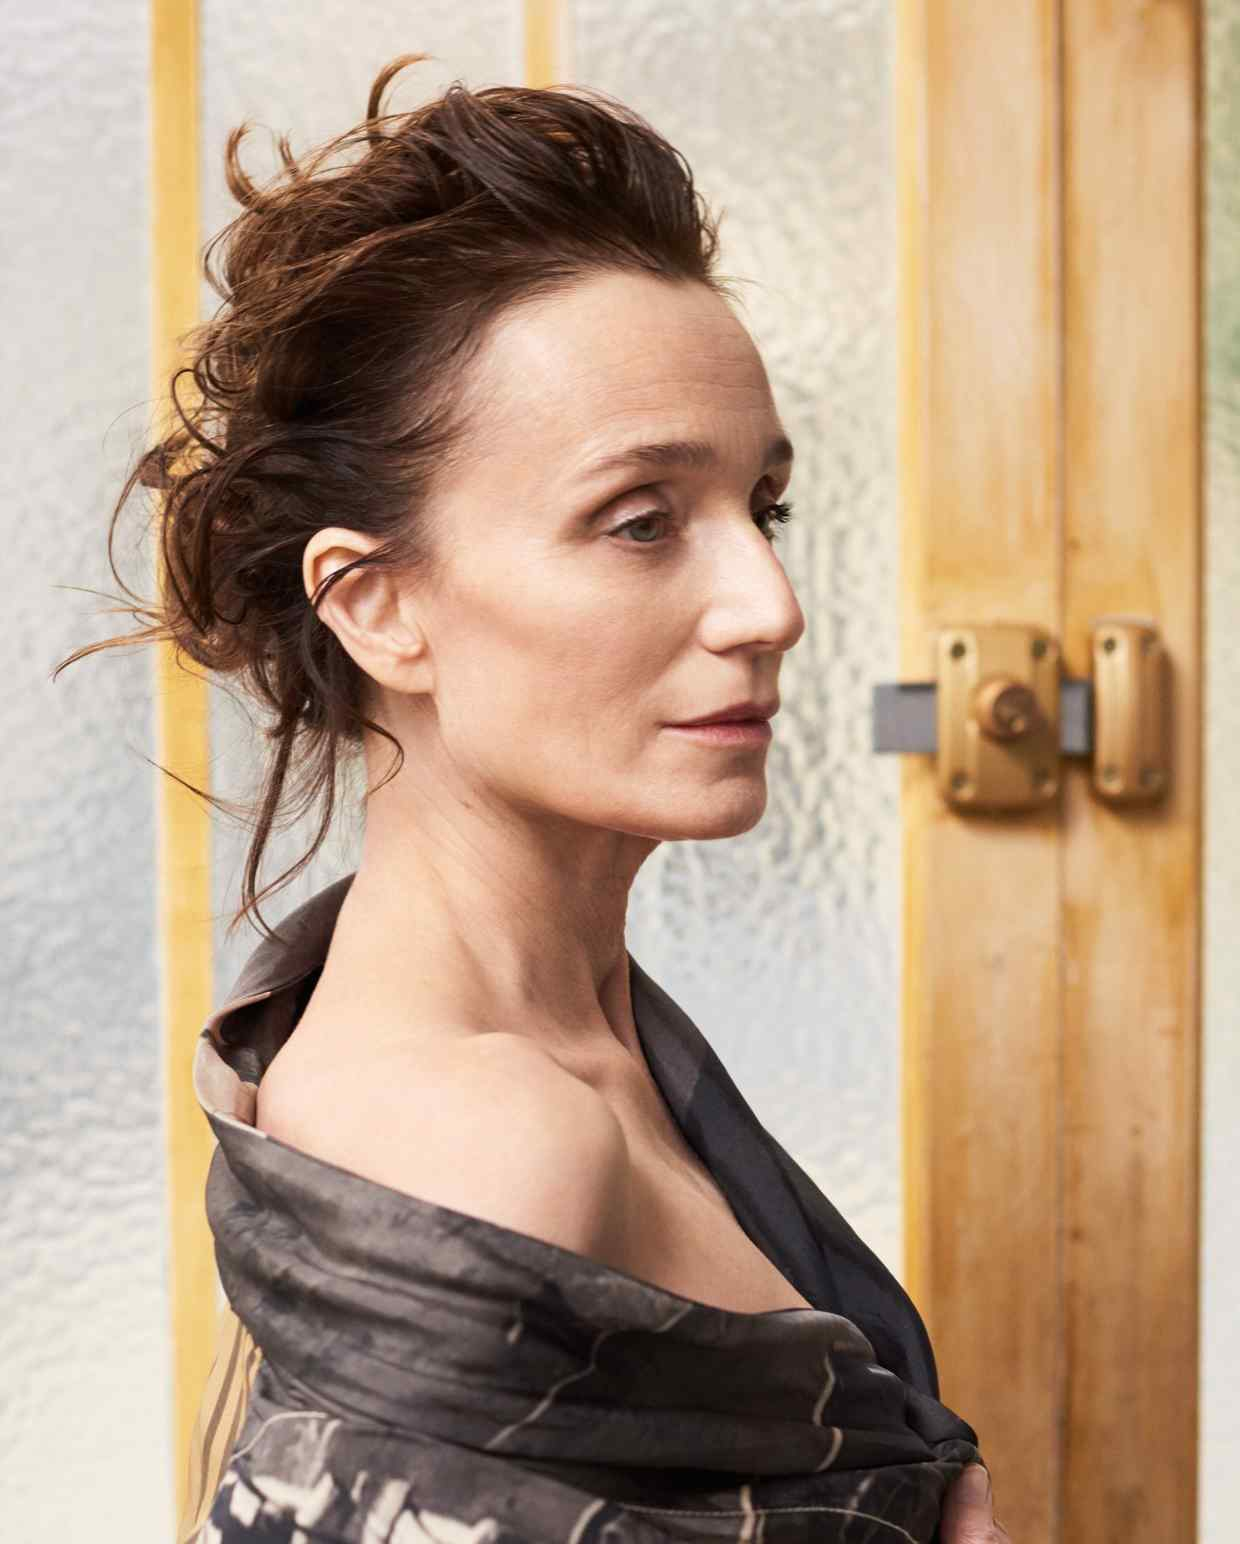 Kristin Scott Thomas-fthtsi-assets-production-ez-images-7-7-6-8-1208677-28-eng-GB-5